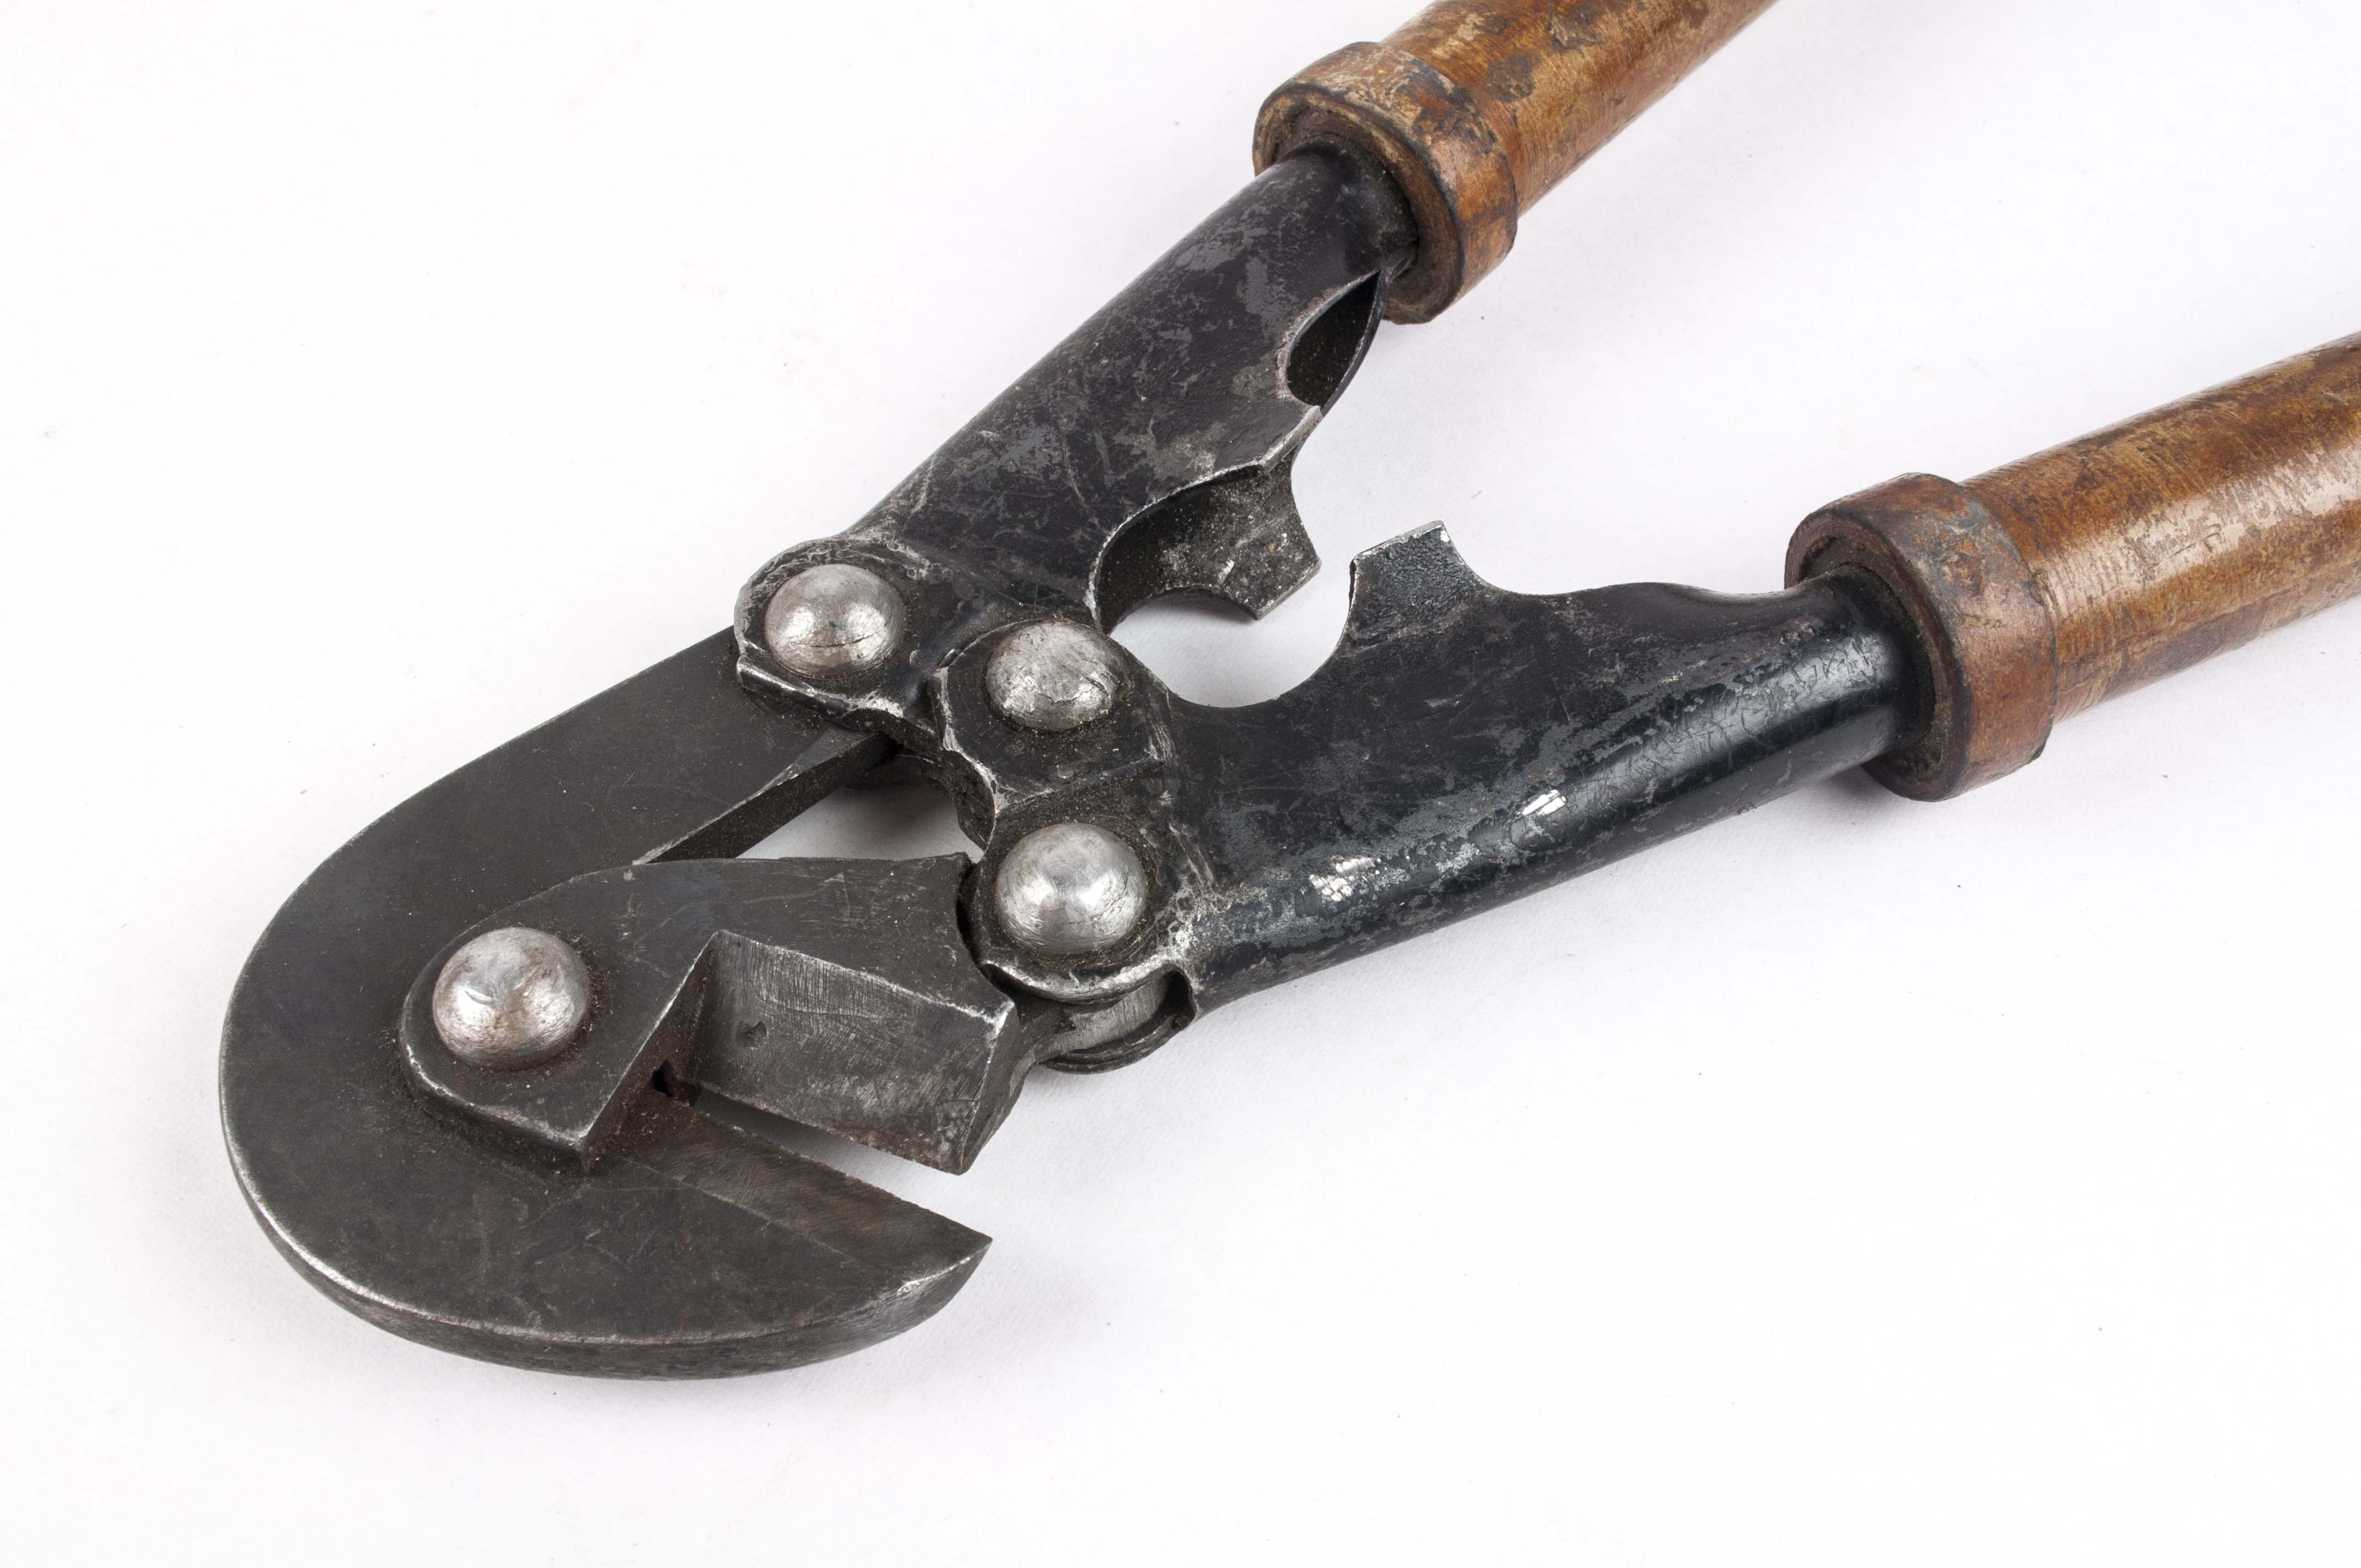 Short handled wire cutters with pouch – Stecker, Freiberg 1939 – fjm44